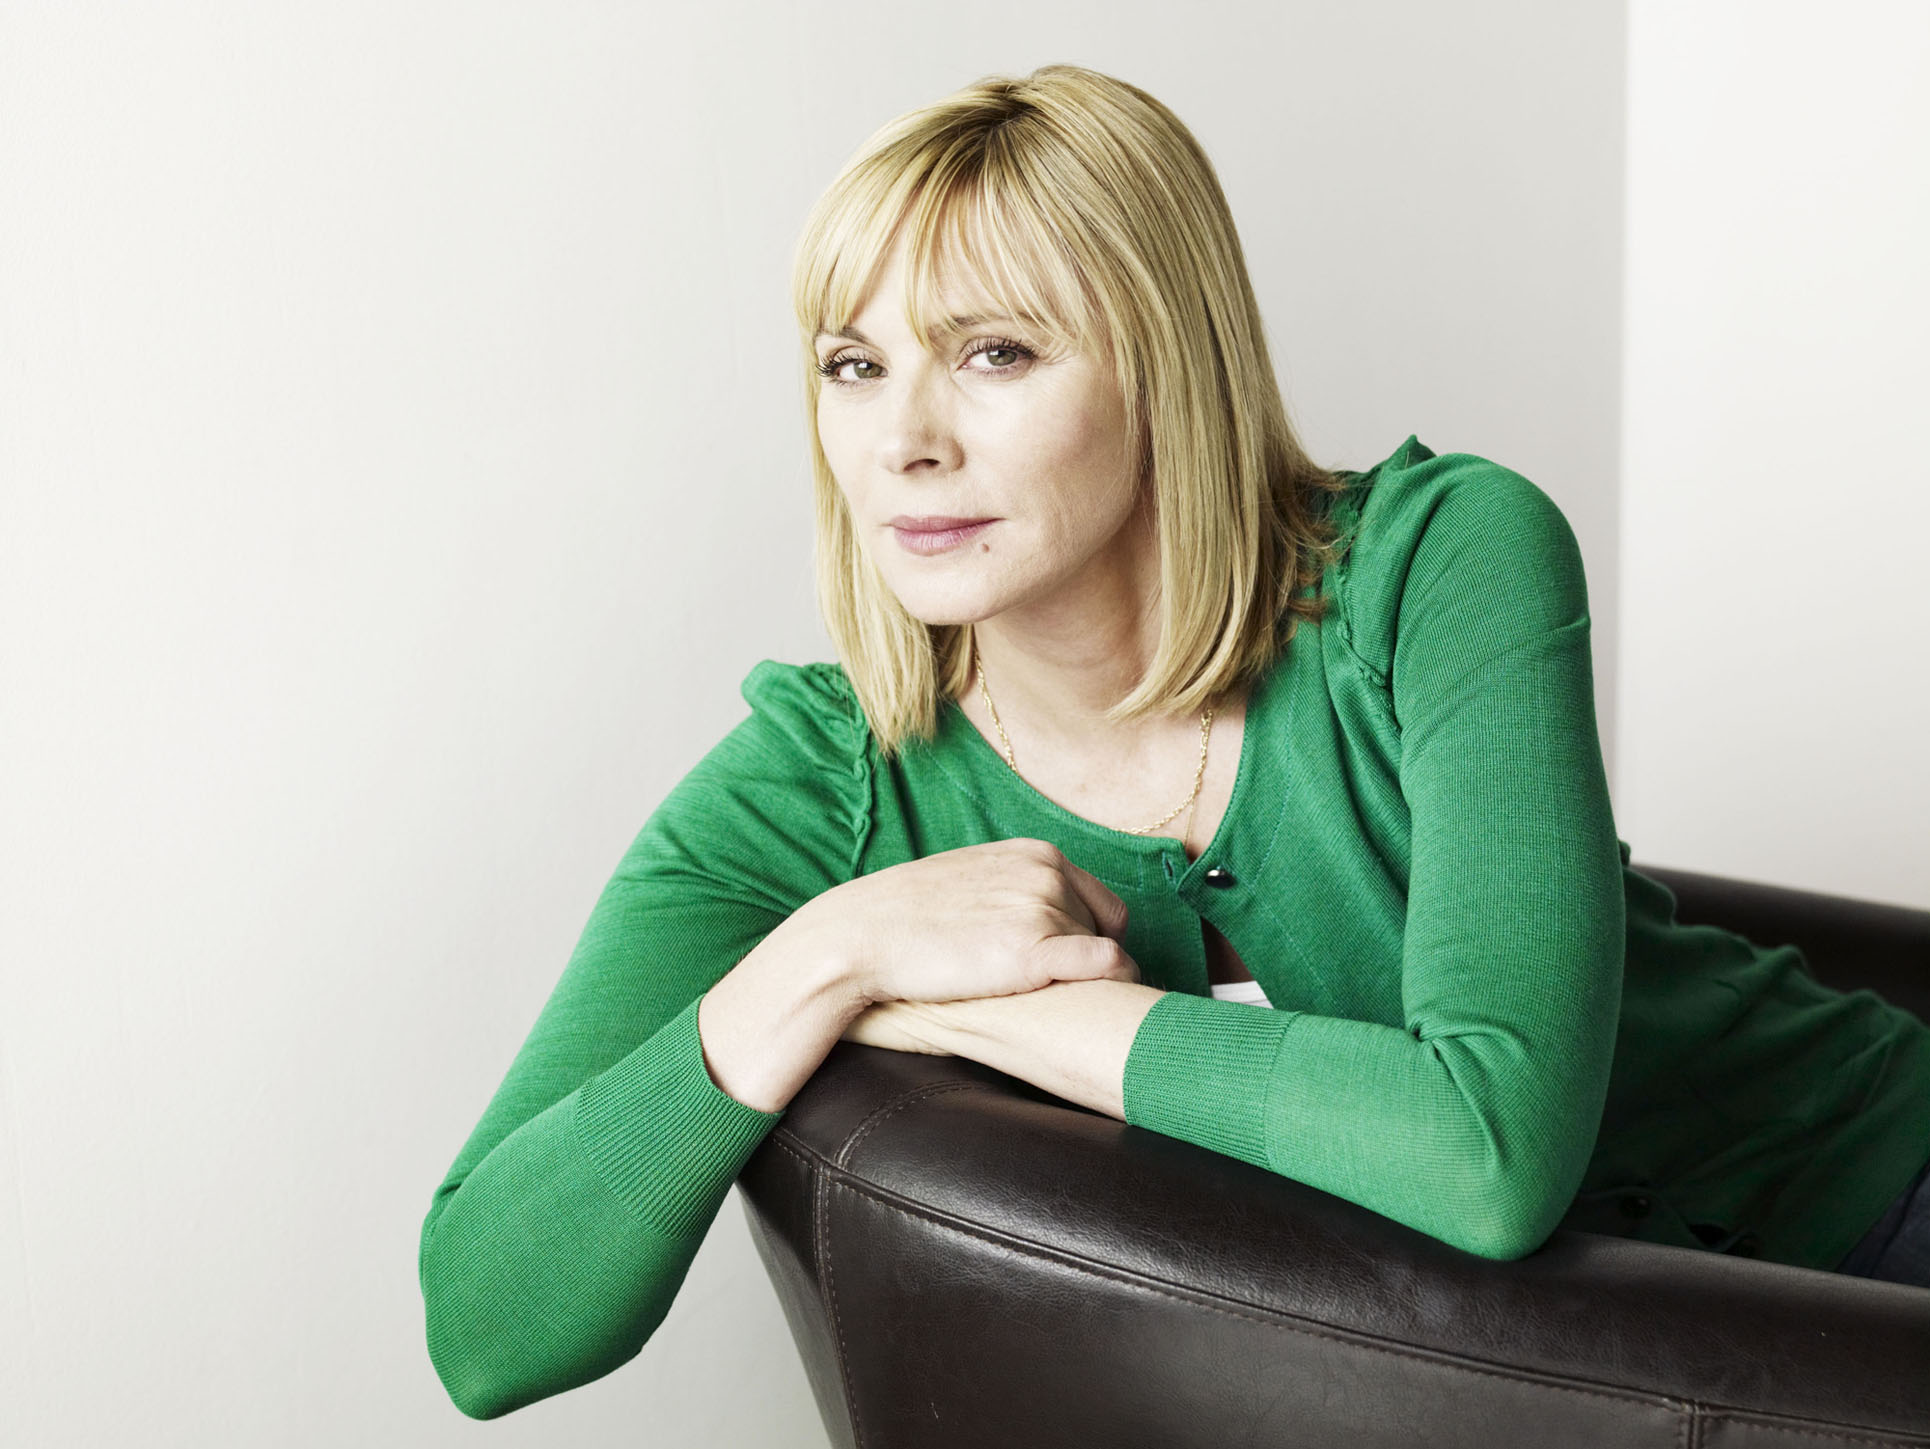 A quick chat with Kim Cattrall